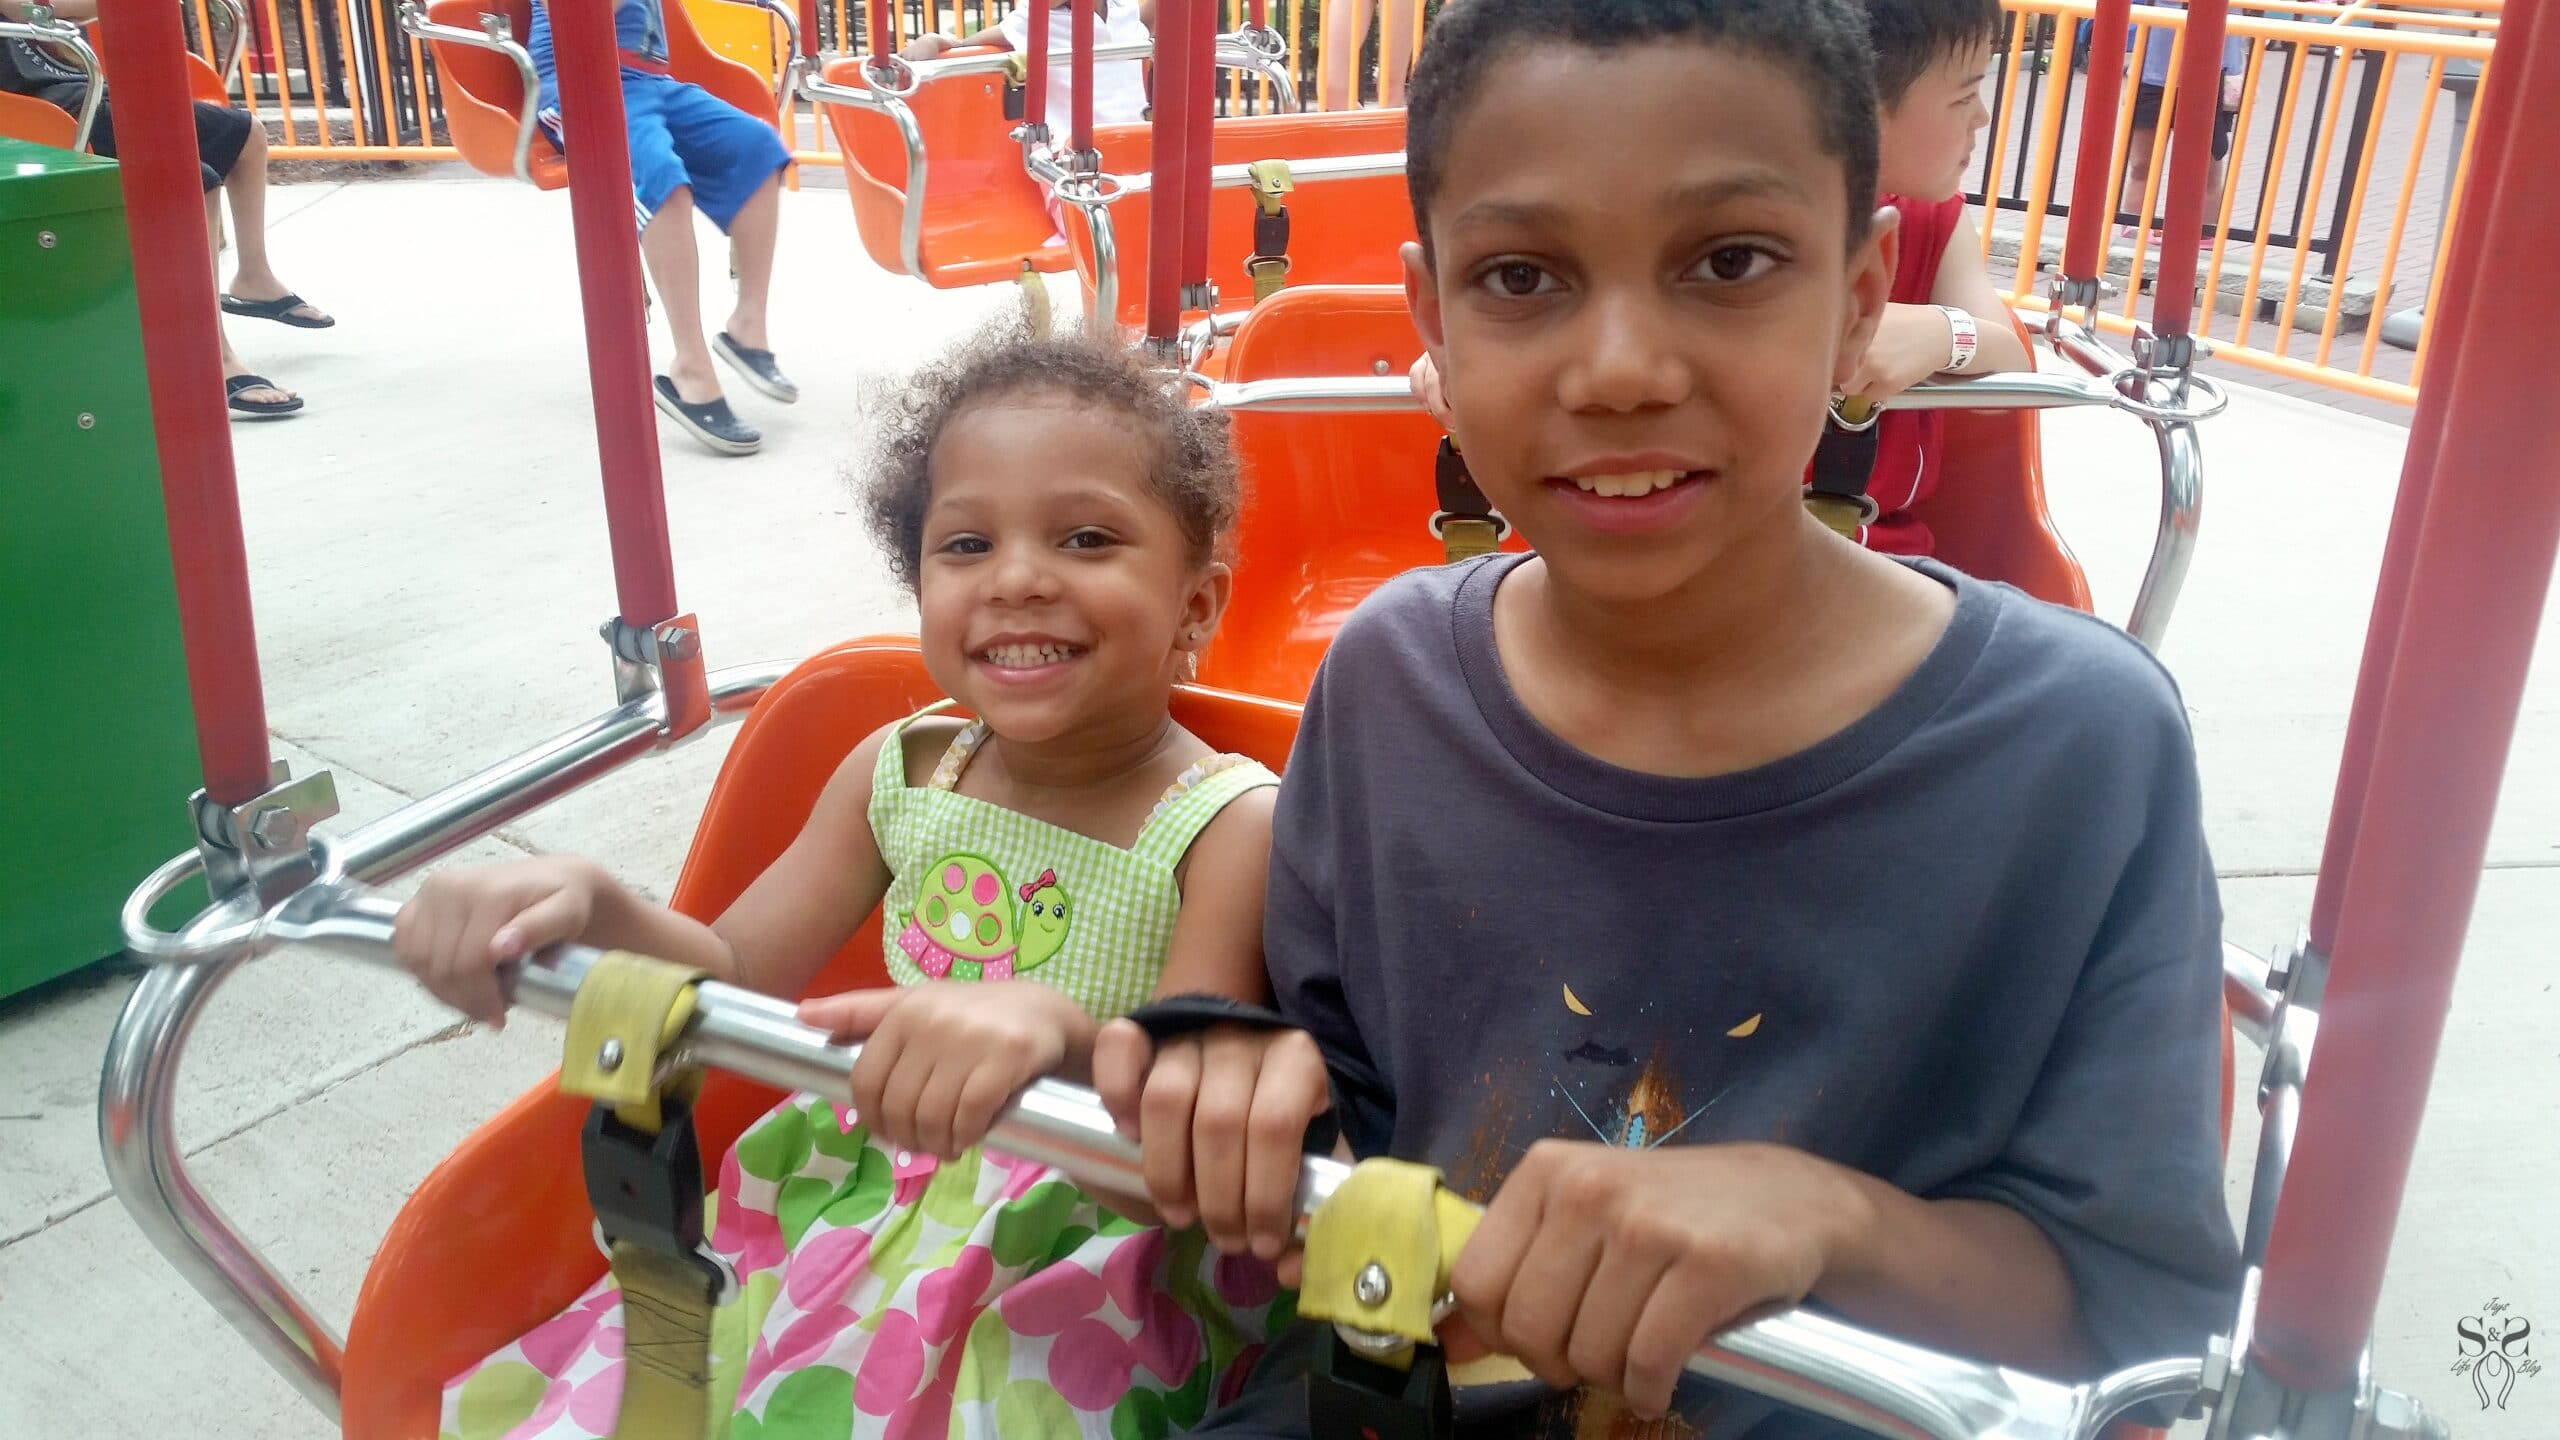 Upcoming Trip To Kings Dominion KidsFest